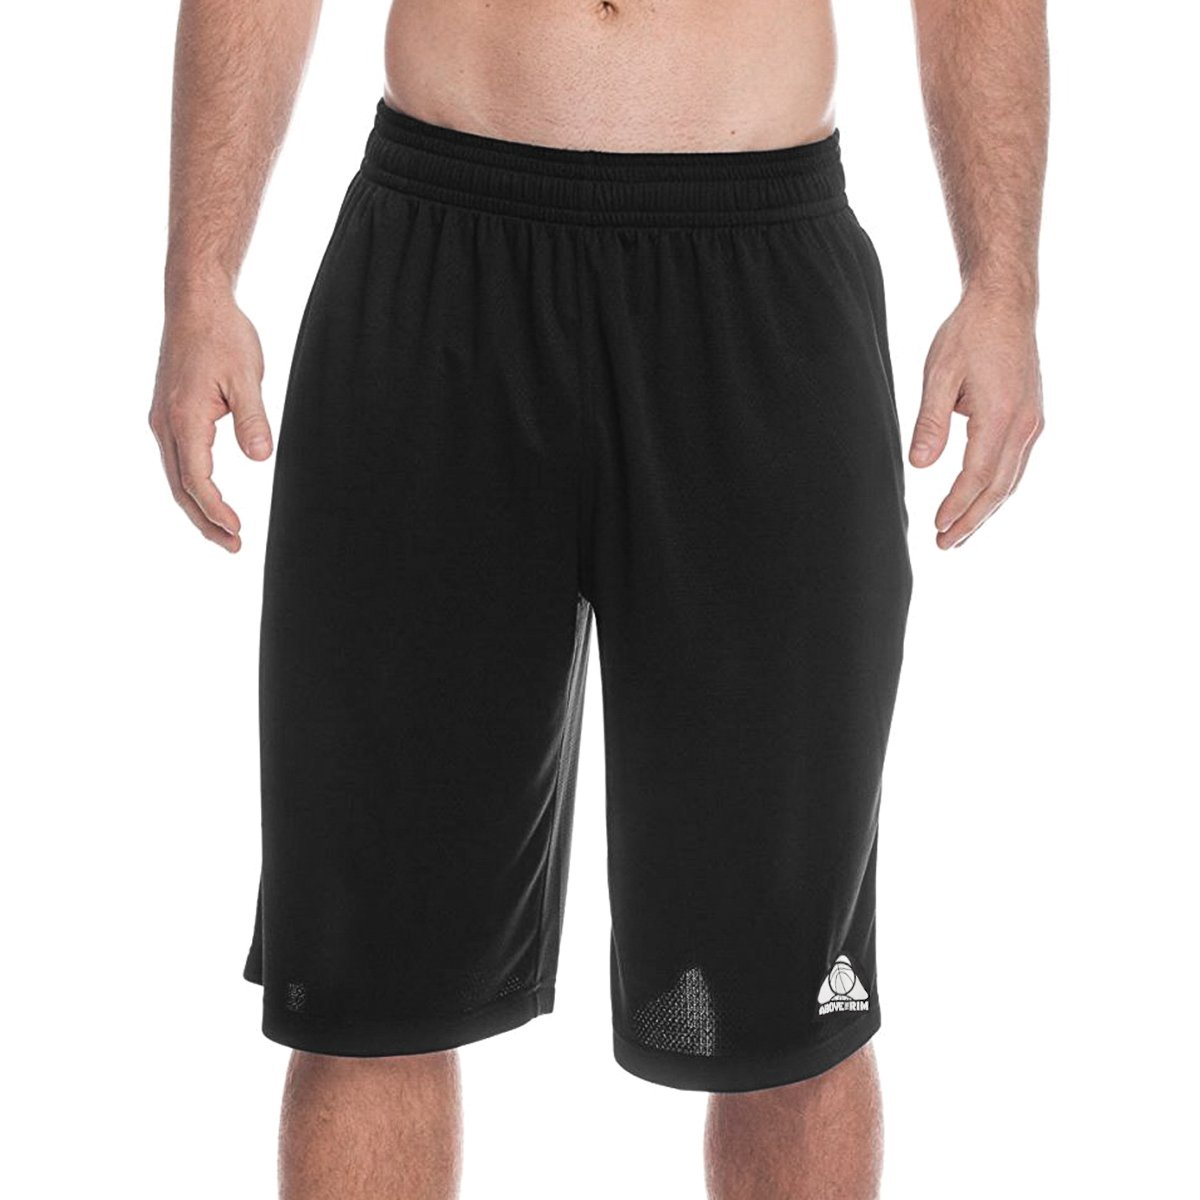 d9988b509 Amazon.com  Above the rim Men s Big and Tall Exercise Elastic Waist Athletic  Gym Knee Shorts Black 2X  Clothing